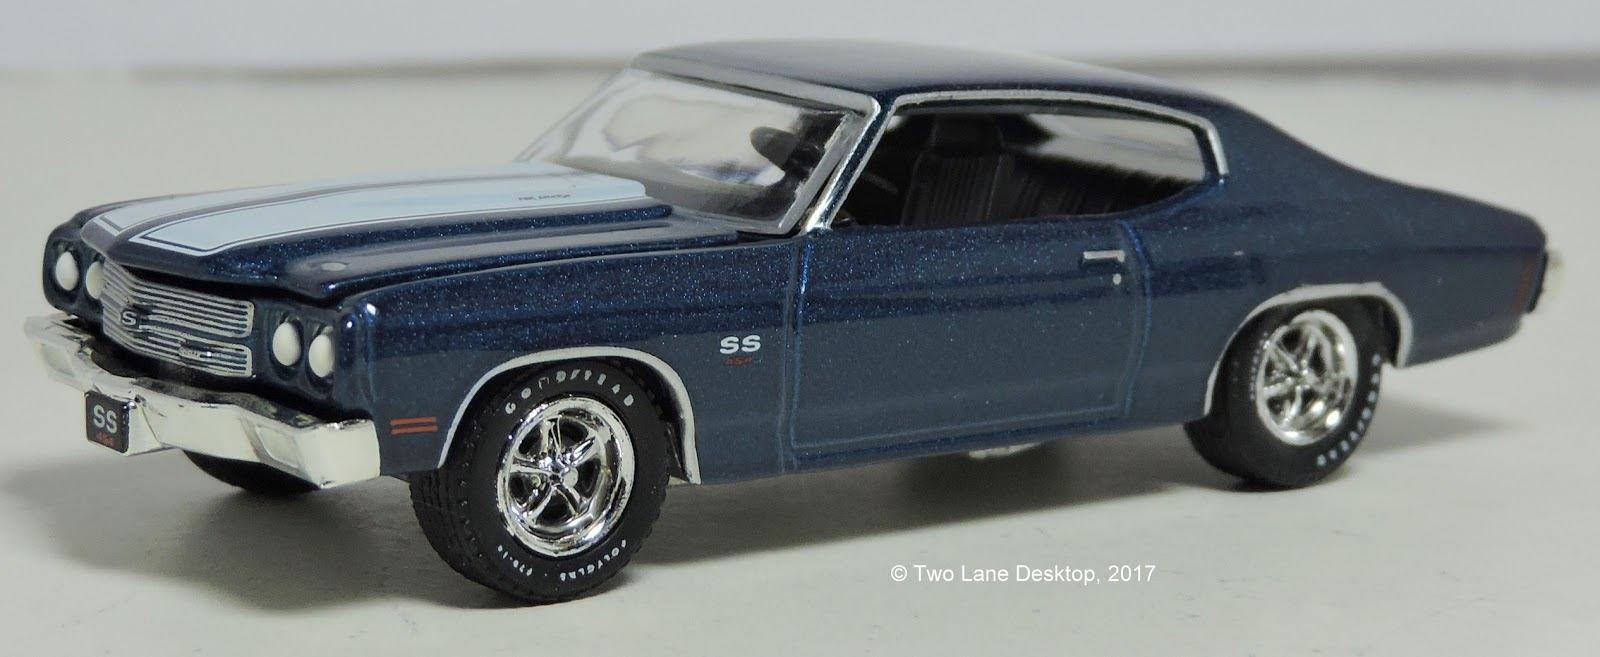 Chevrolet Muscle: Greenlight 1970 Chevrolet Chevelle SS and